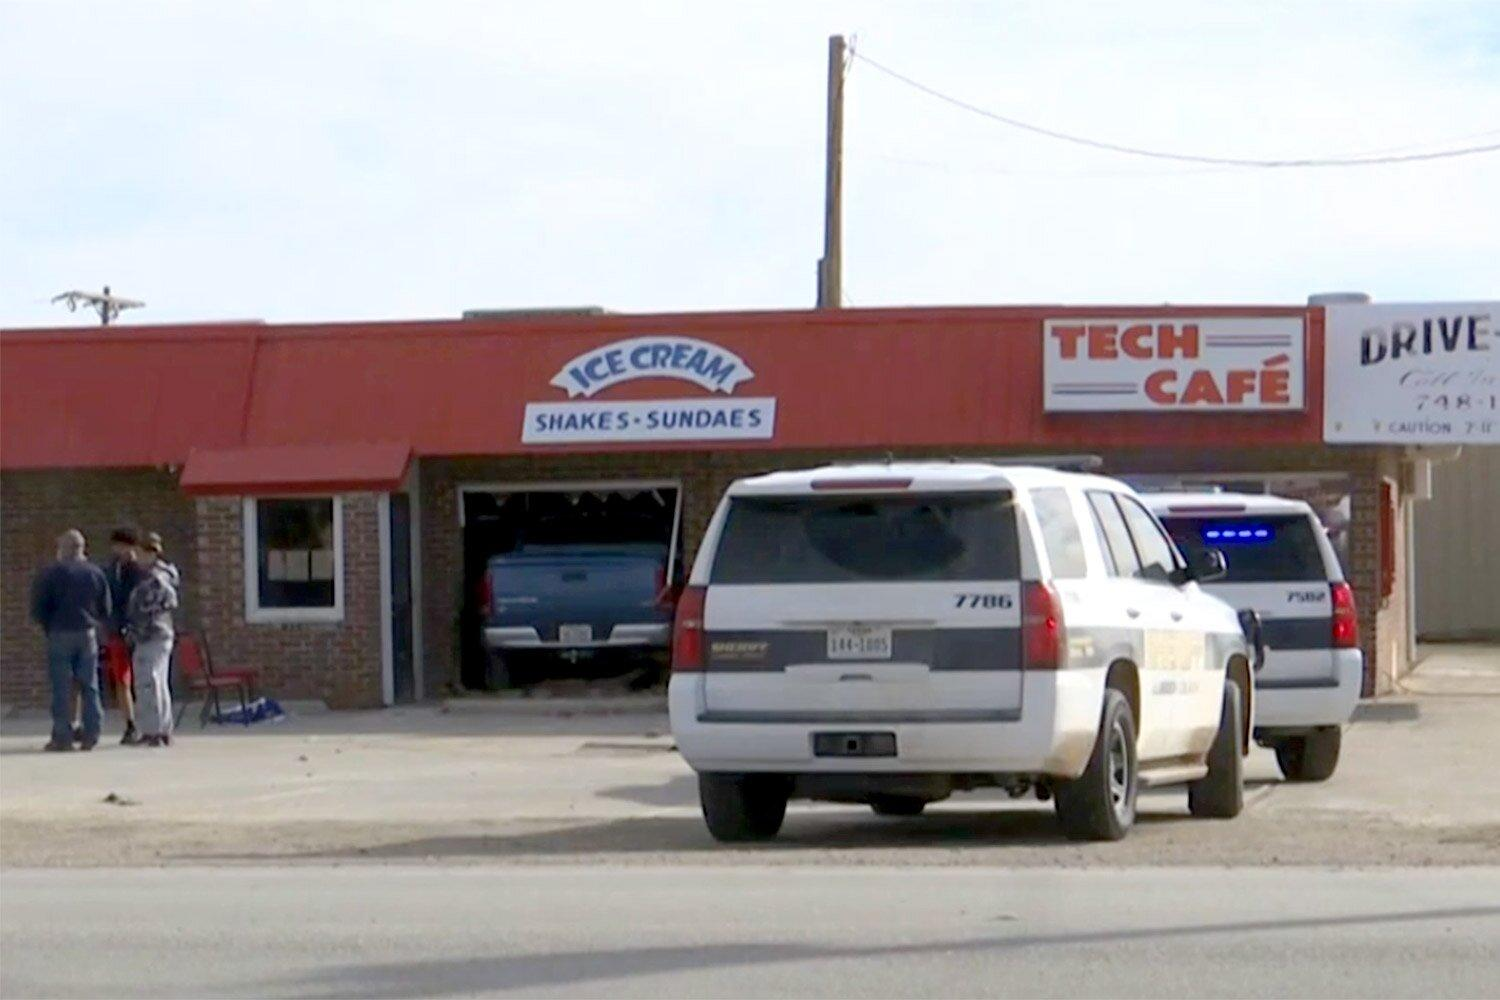 2 Texas Men Die After Pickup Truck Driver Accidentally Puts Car In Drive Slamming Into Restaurant